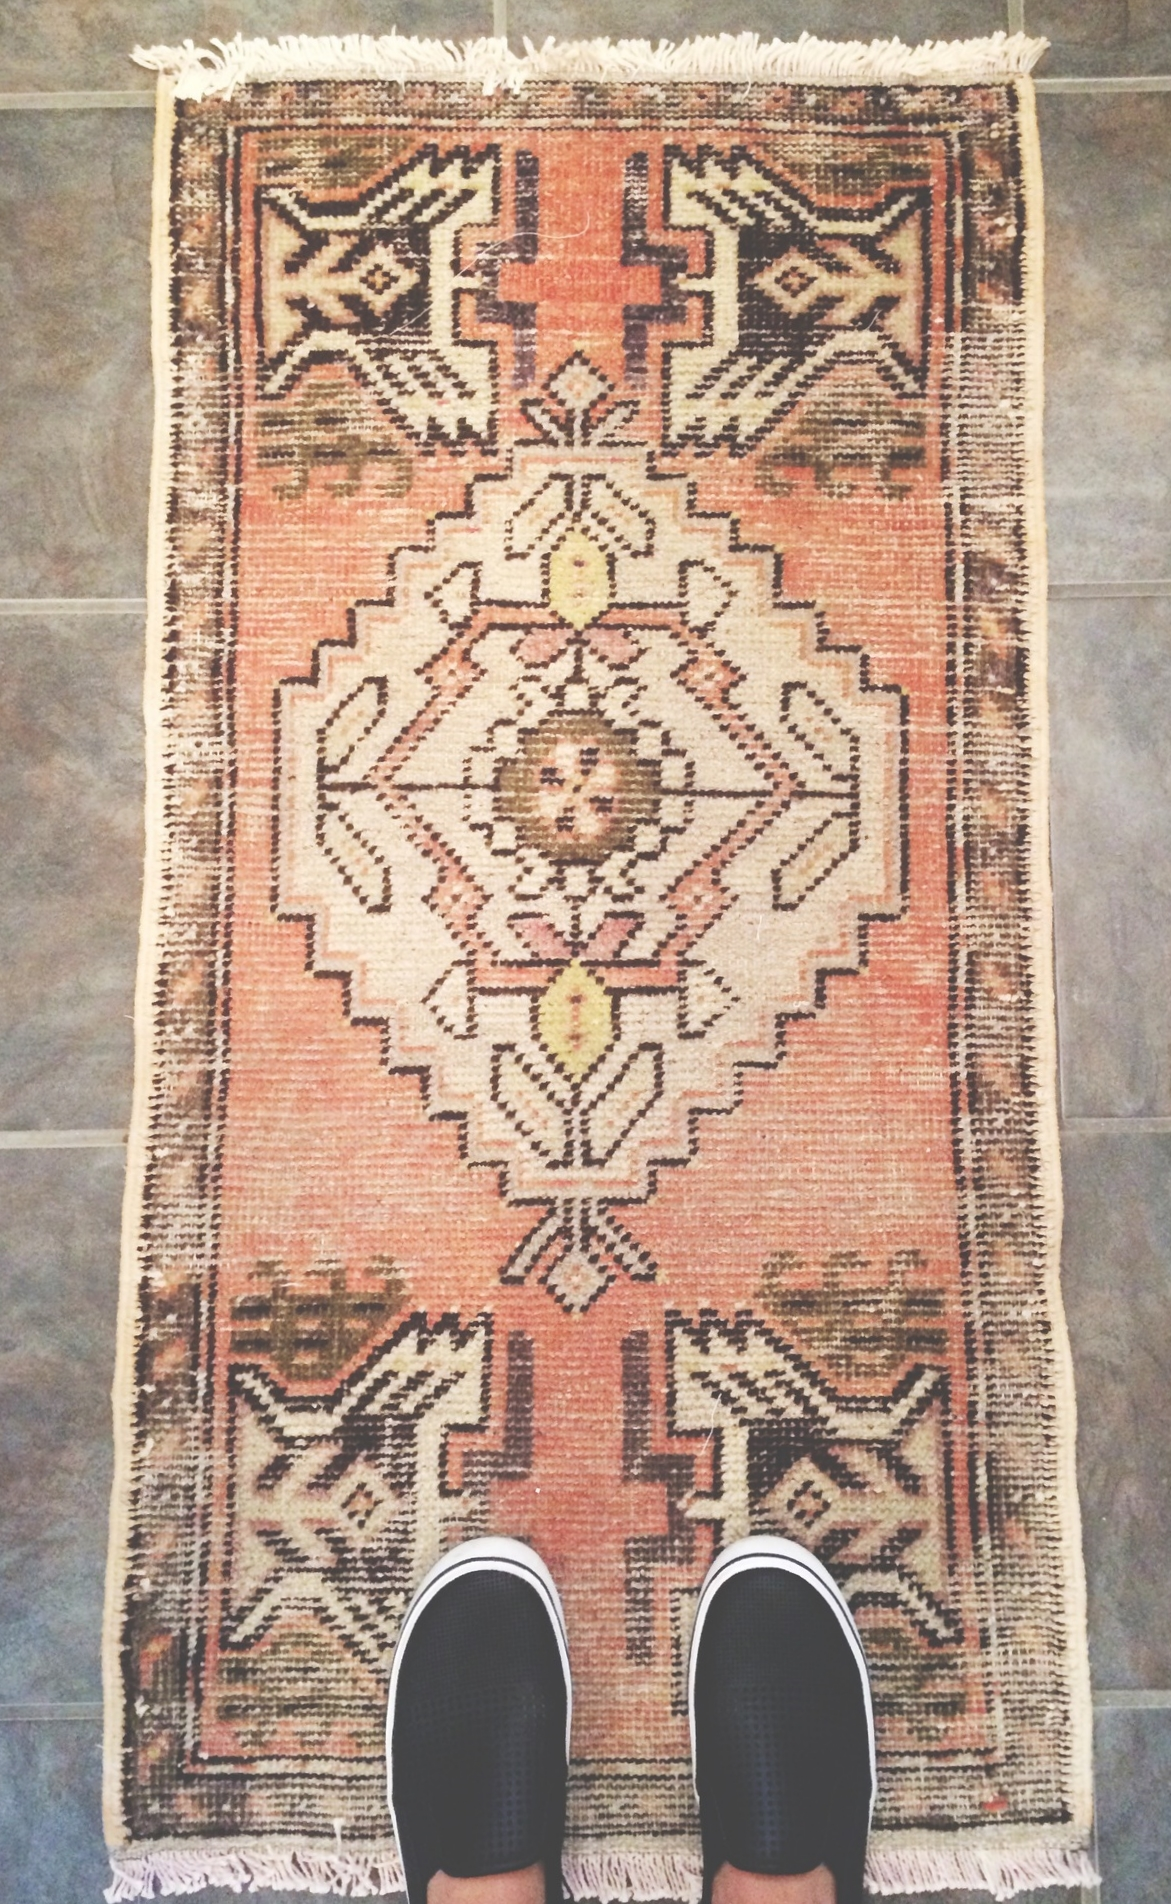 """I have an obsession with rugs-- mostly vintage, persian, overdyed, oriental, you name it. I found this baby on                      Normal   0           false   false   false     EN-US   JA   X-NONE                                                                                                                                                                                                                                                                                                                                                                               /* Style Definitions */ table.MsoNormalTable {mso-style-name:""""Table Normal""""; mso-tstyle-rowband-size:0; mso-tstyle-colband-size:0; mso-style-noshow:yes; mso-style-priority:99; mso-style-parent:""""""""; mso-padding-alt:0in 5.4pt 0in 5.4pt; mso-para-margin:0in; mso-para-margin-bottom:.0001pt; mso-pagination:widow-orphan; font-size:12.0pt; font-family:Cambria; mso-ascii-font-family:Cambria; mso-ascii-theme-font:minor-latin; mso-hansi-font-family:Cambria; mso-hansi-theme-font:minor-latin;}       Etsy   and I want to curl up in a ball and lay on it all day long I love it so much."""